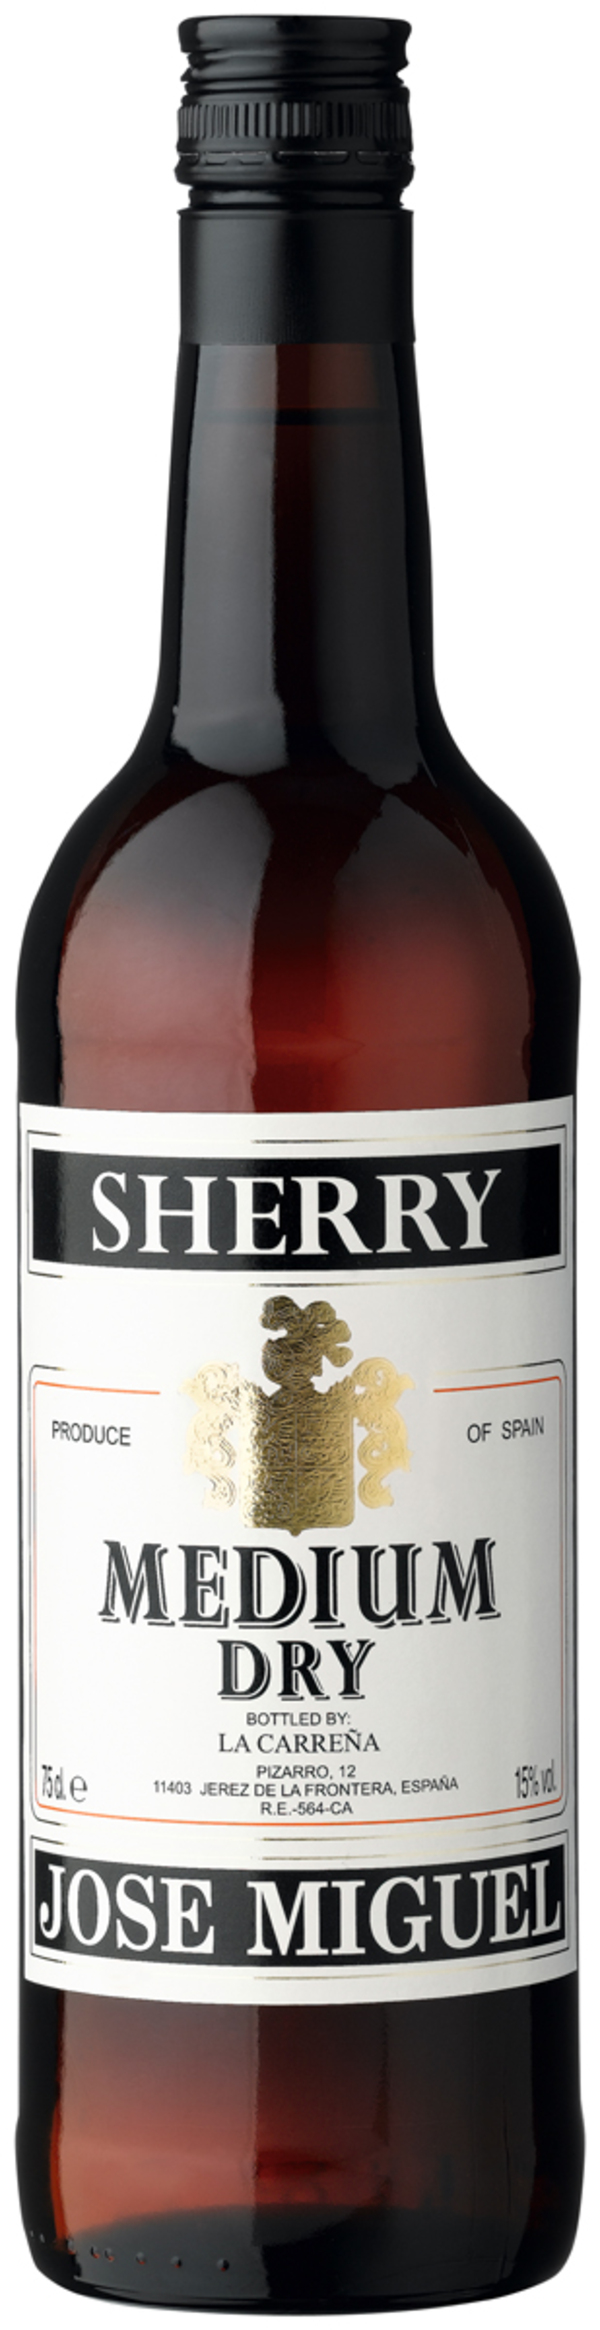 Jose Miguel Sherry Medium Dry 0,75 ltr